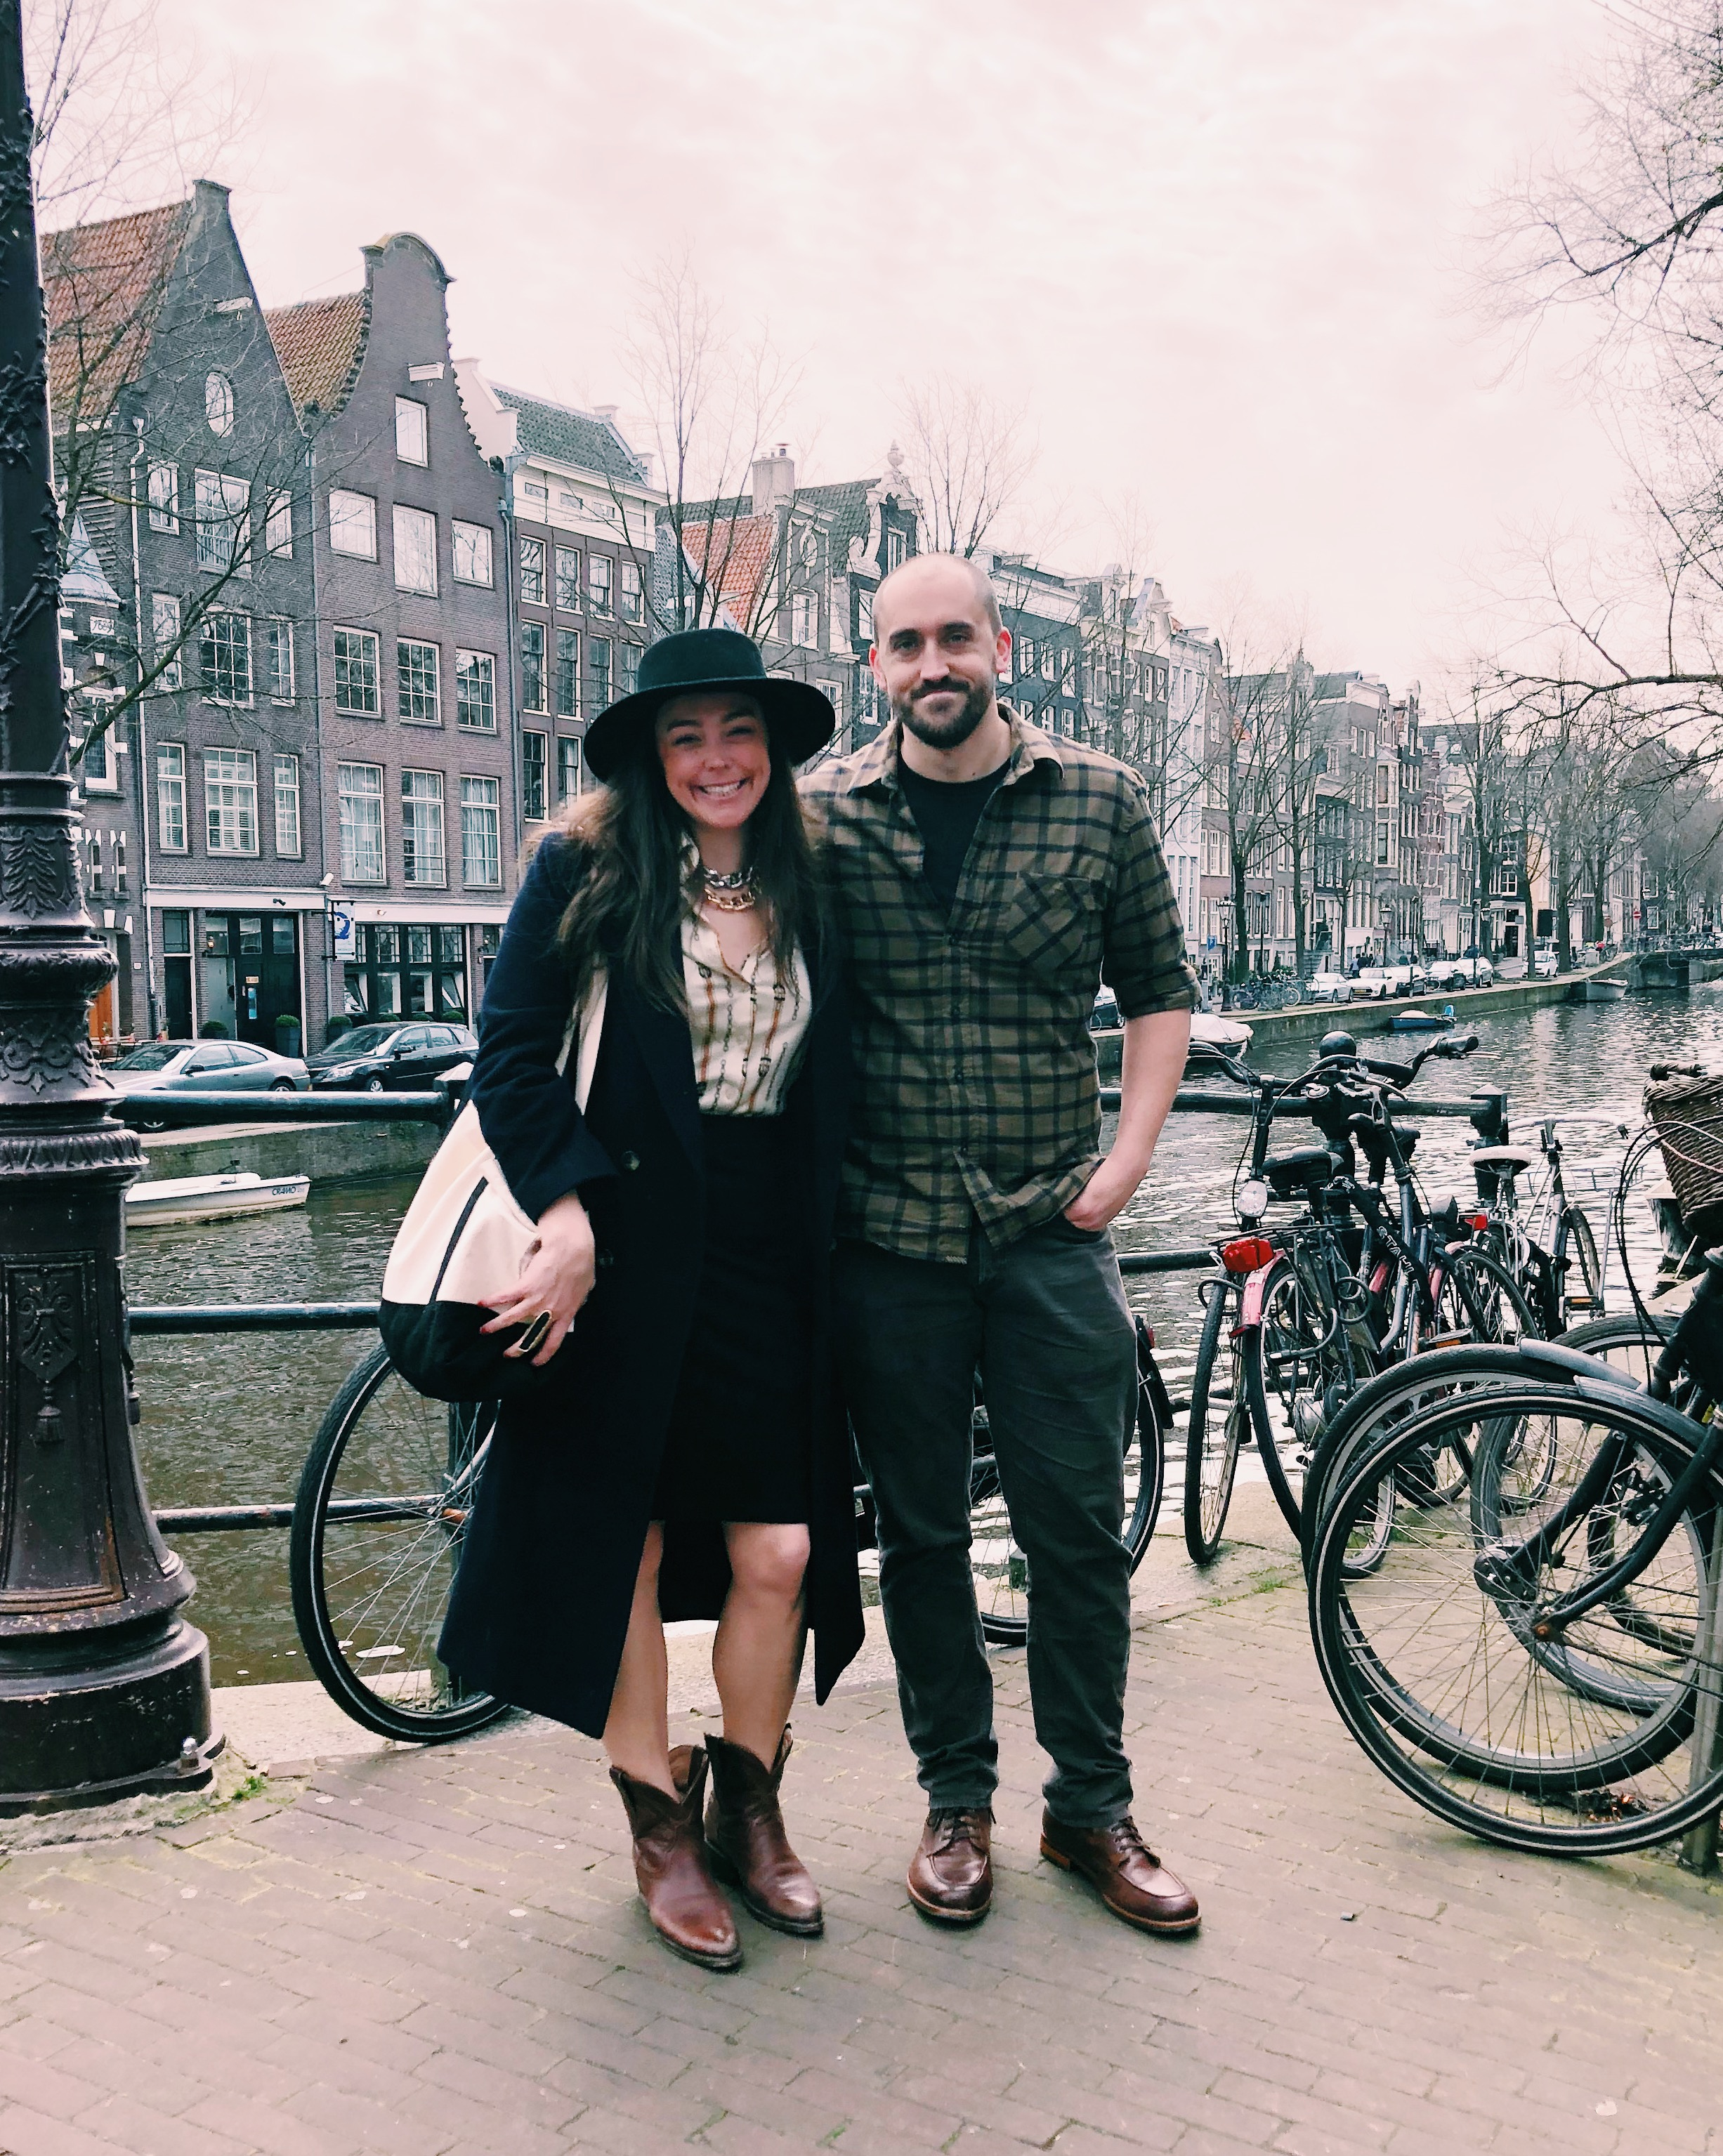 Amsterdam, Netherlands: Saying goodbye to Amsterdam and heading for Munich in my black pencil skirt and a top I picked up at a vintage shop in Amsterdam